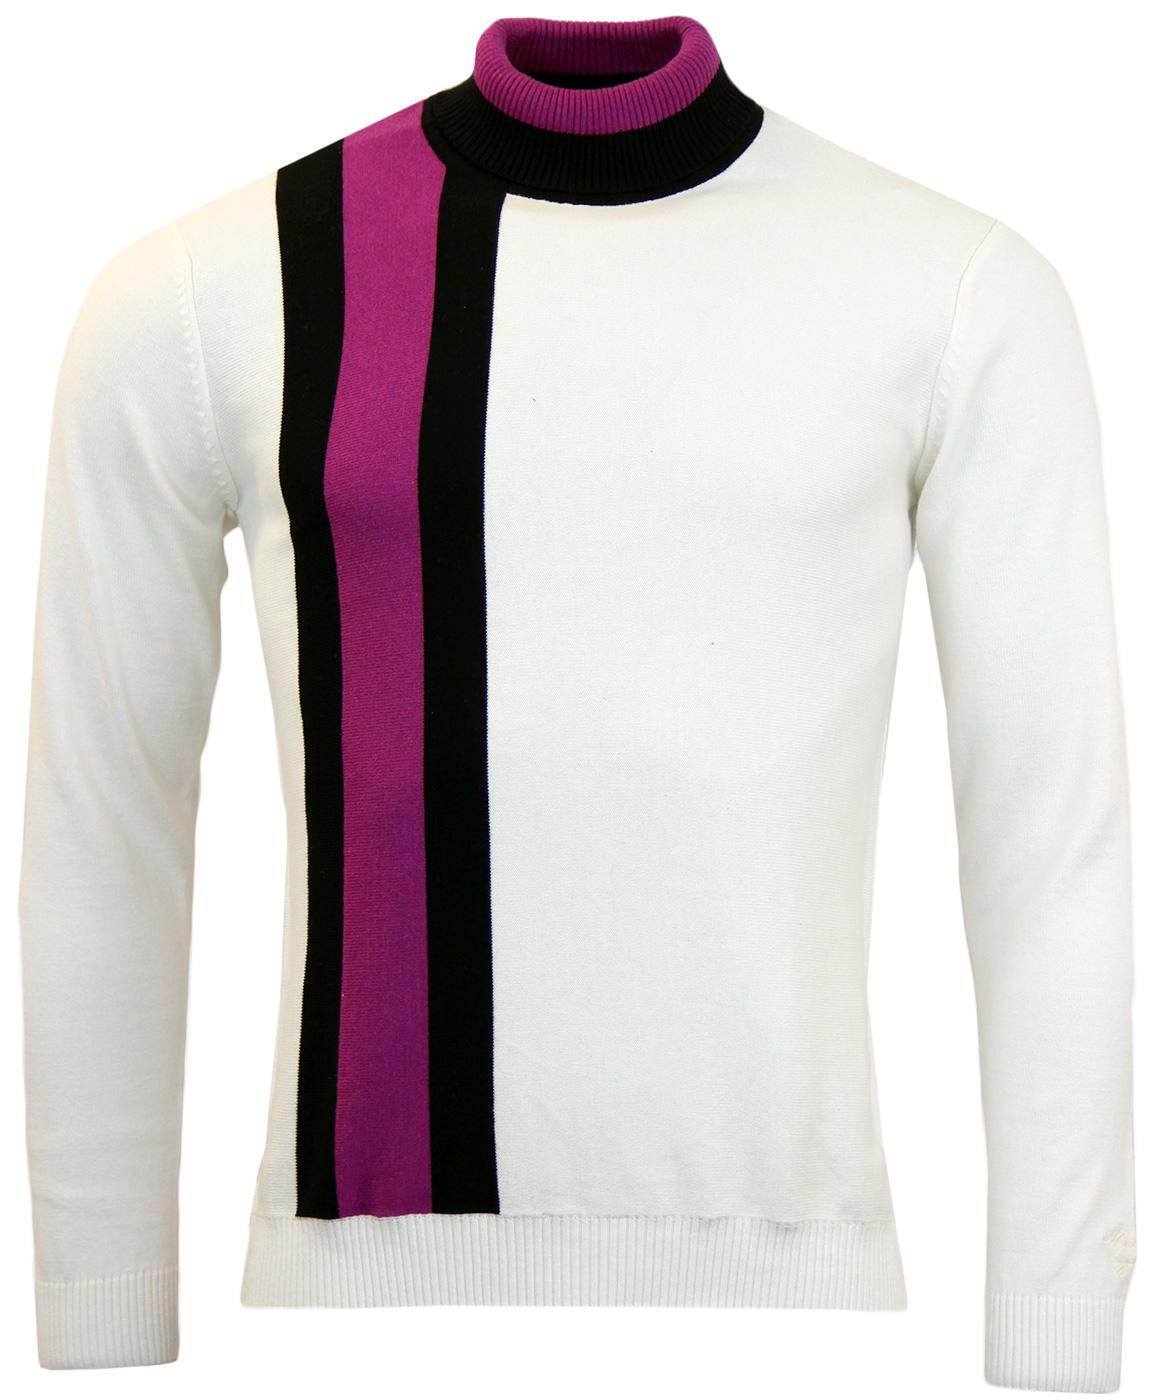 Lewis MADCAP ENGLAND Mod Roll Neck Racing Jumper